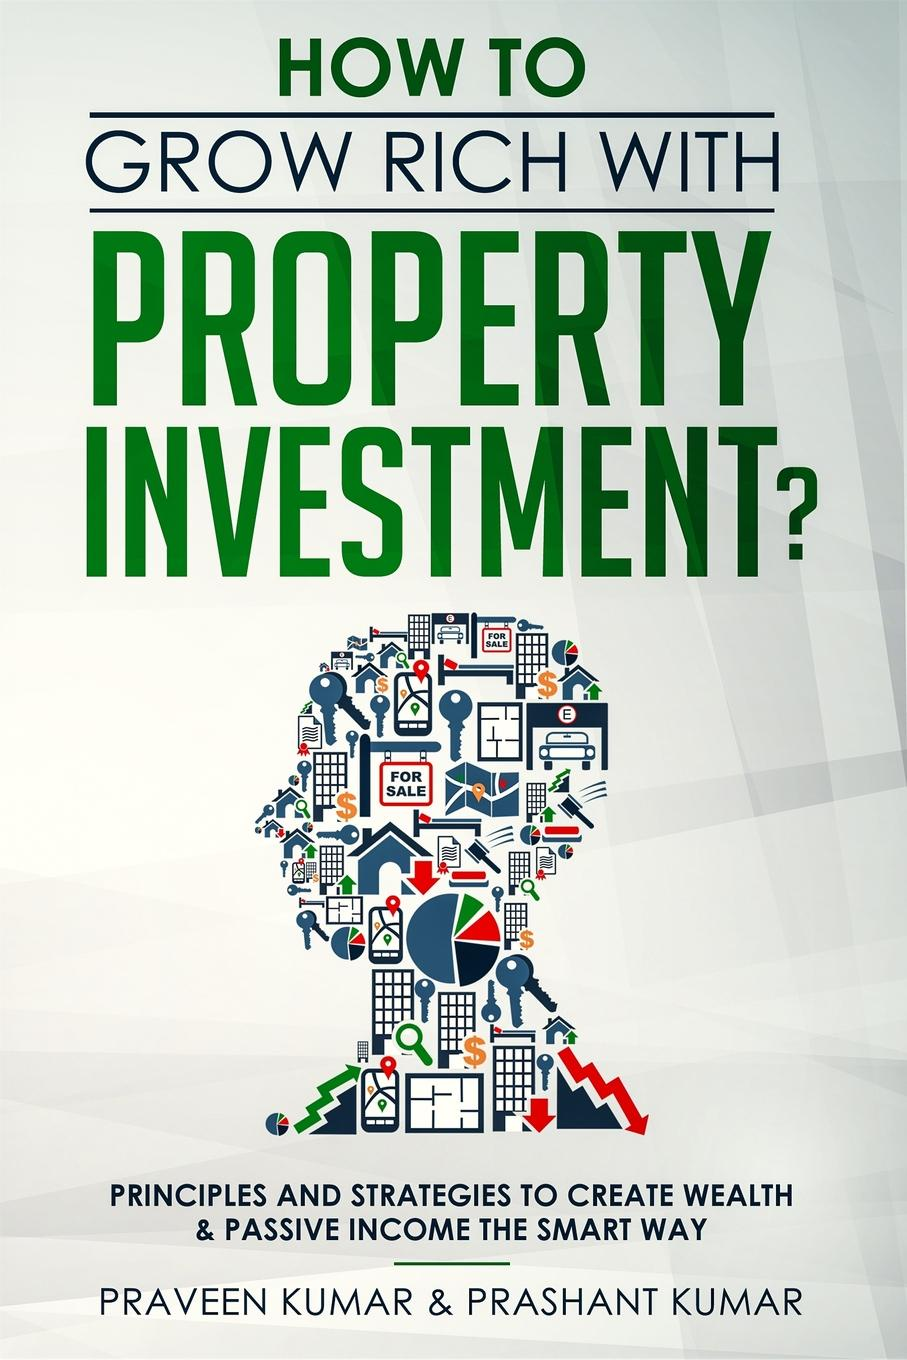 Praveen Kumar, Prashant Kumar How to Grow Rich with Property Investment?. Principles and Strategies to Create Wealth & Passive Income the Smart Way robert g allen multiple streams of income how to generate a lifetime of unlimited wealth